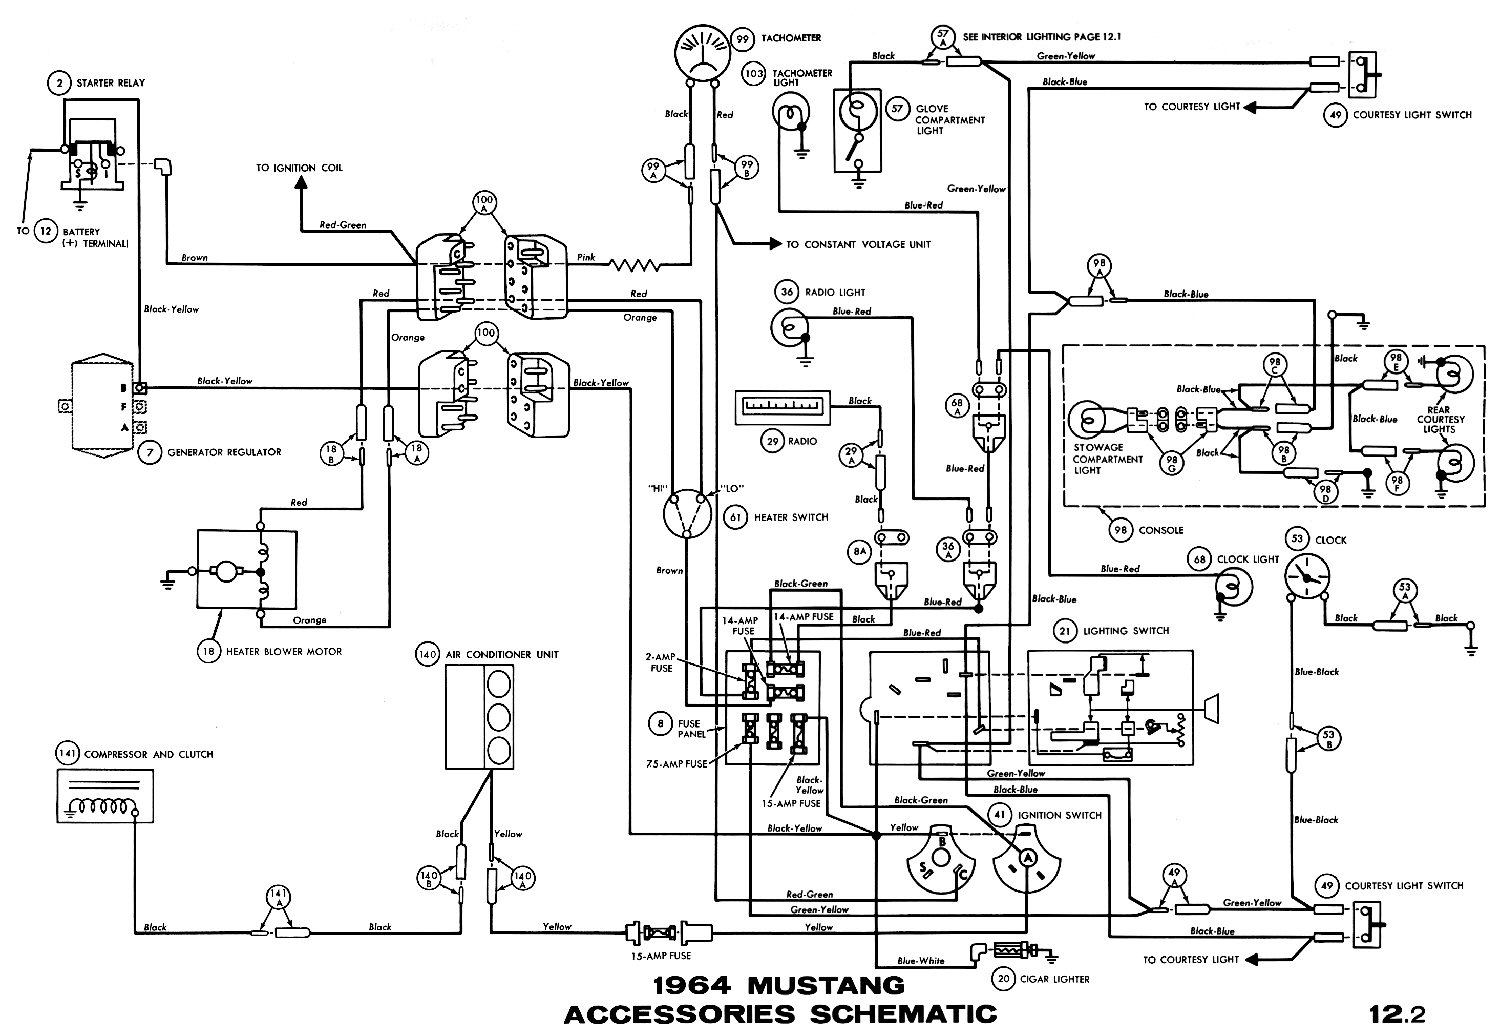 1964m 2015 mustang wiring diagram schematic mustang 2015 \u2022 free wiring mustang wiring diagrams at nearapp.co